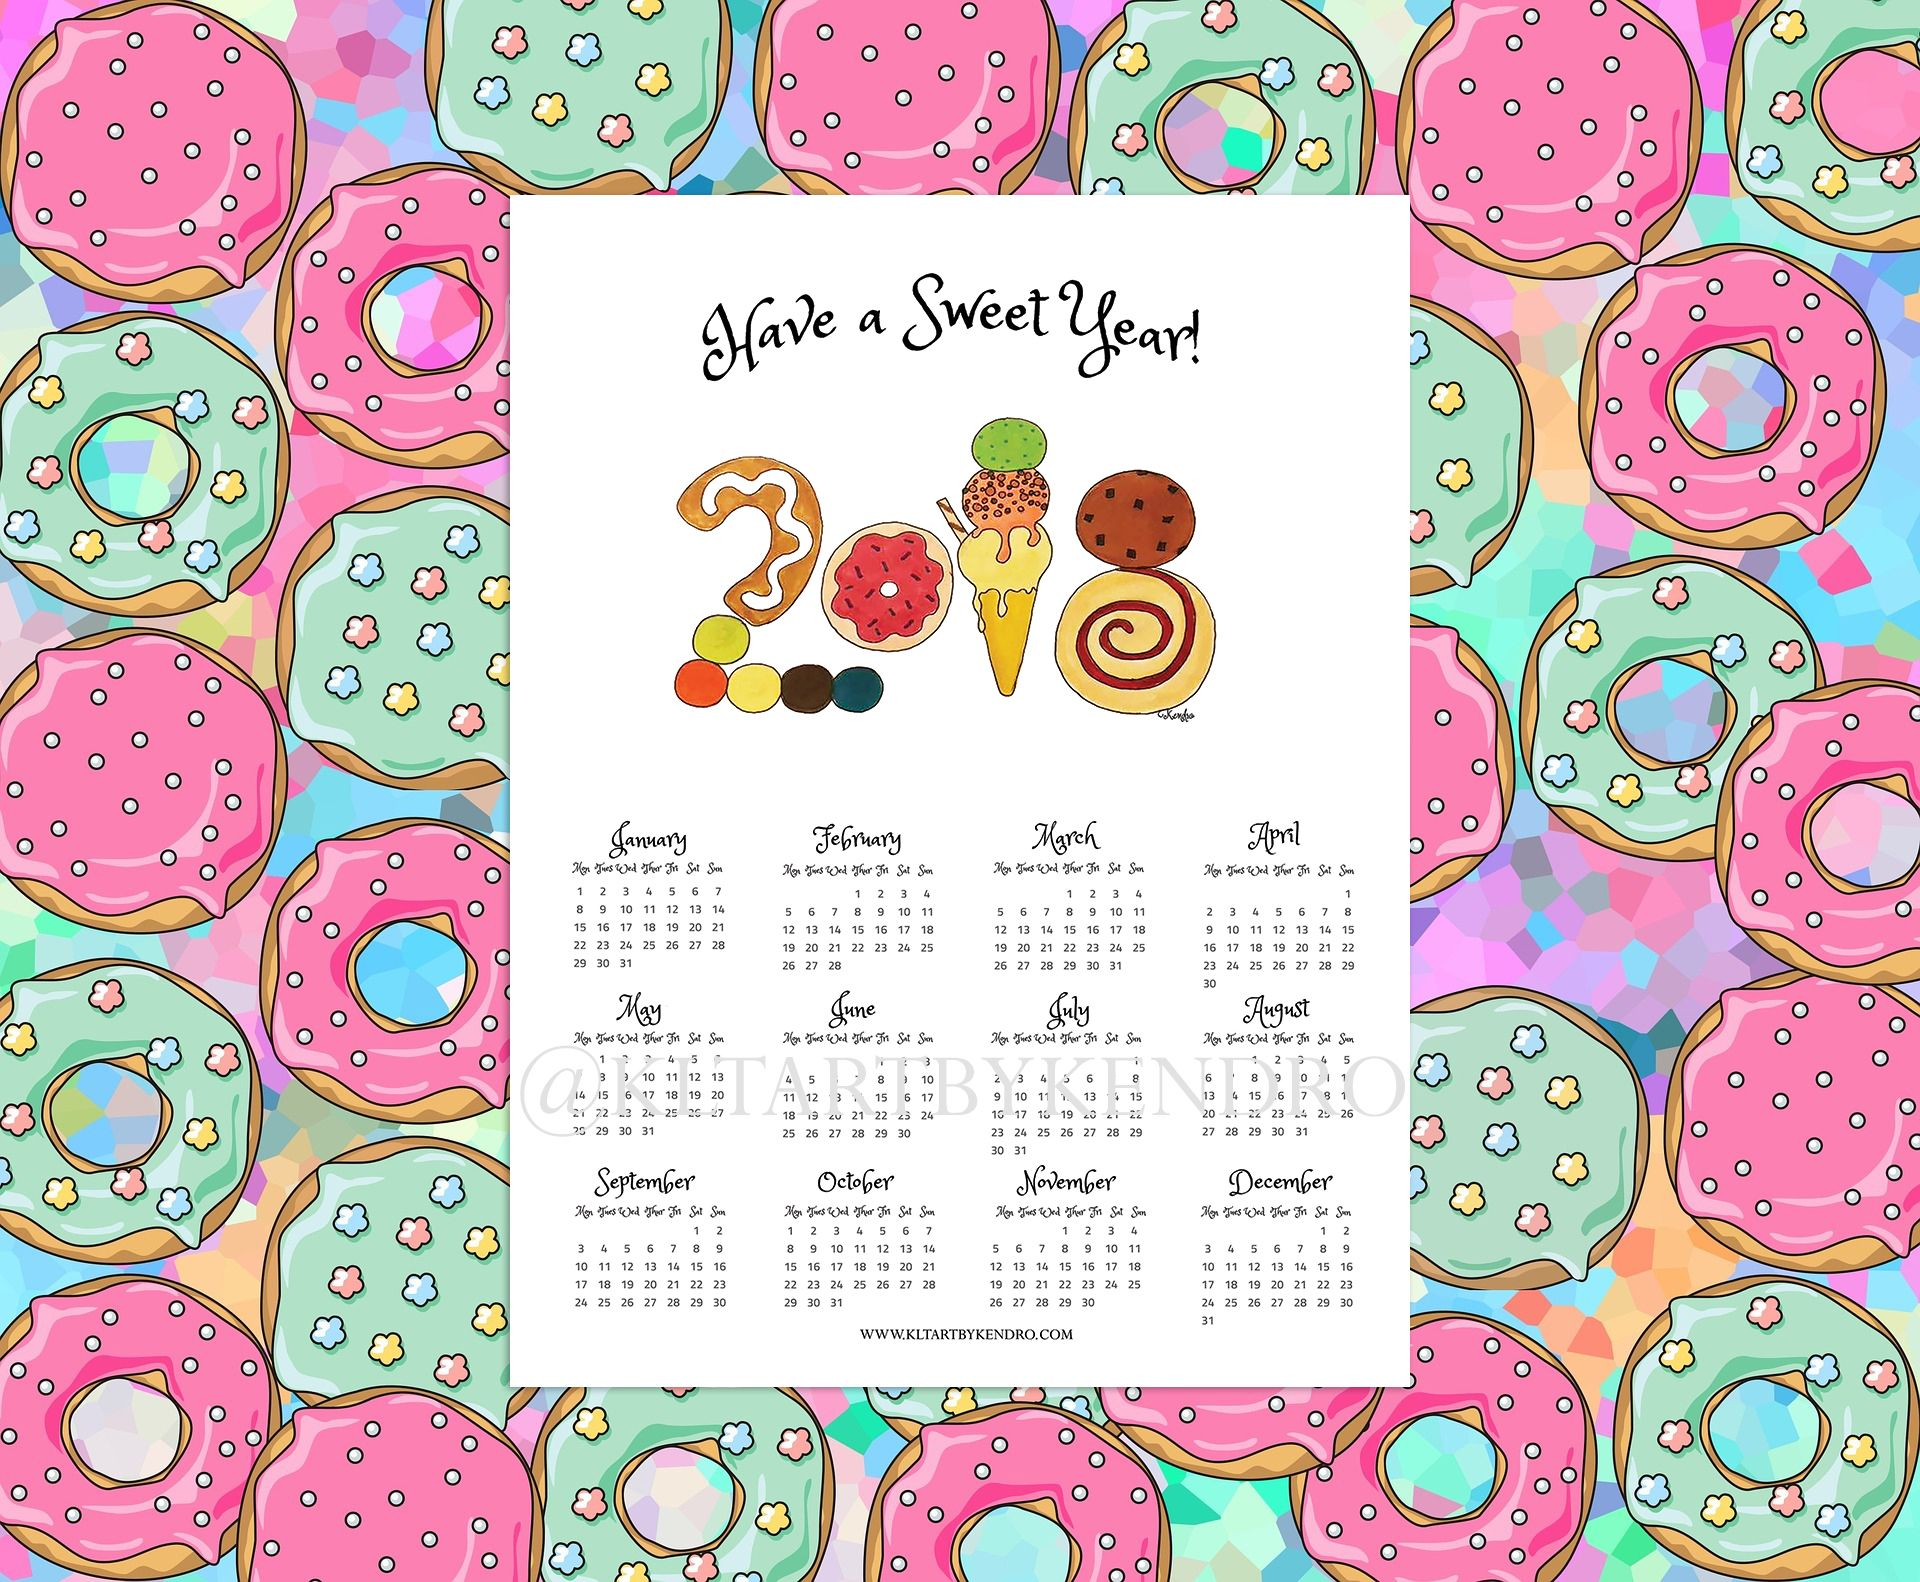 have a sweet year 2018 sweet treats theme 12 month poster calendar